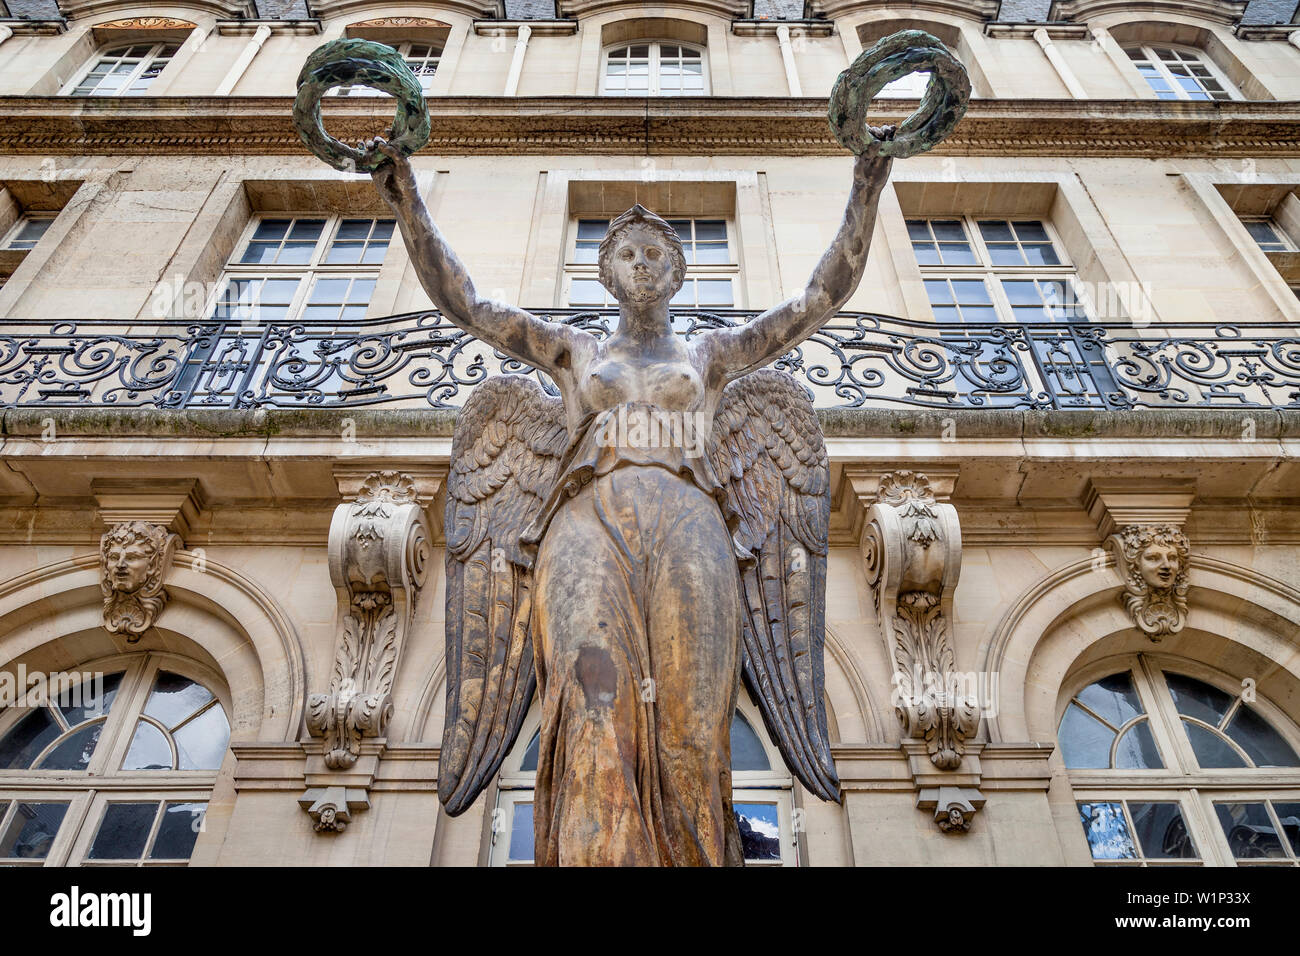 Louis Simon Boizot's 'Victory' Sculpture in the garden of Musee Carnavalet - now the Museum of French History, Marais, Paris France - Stock Image